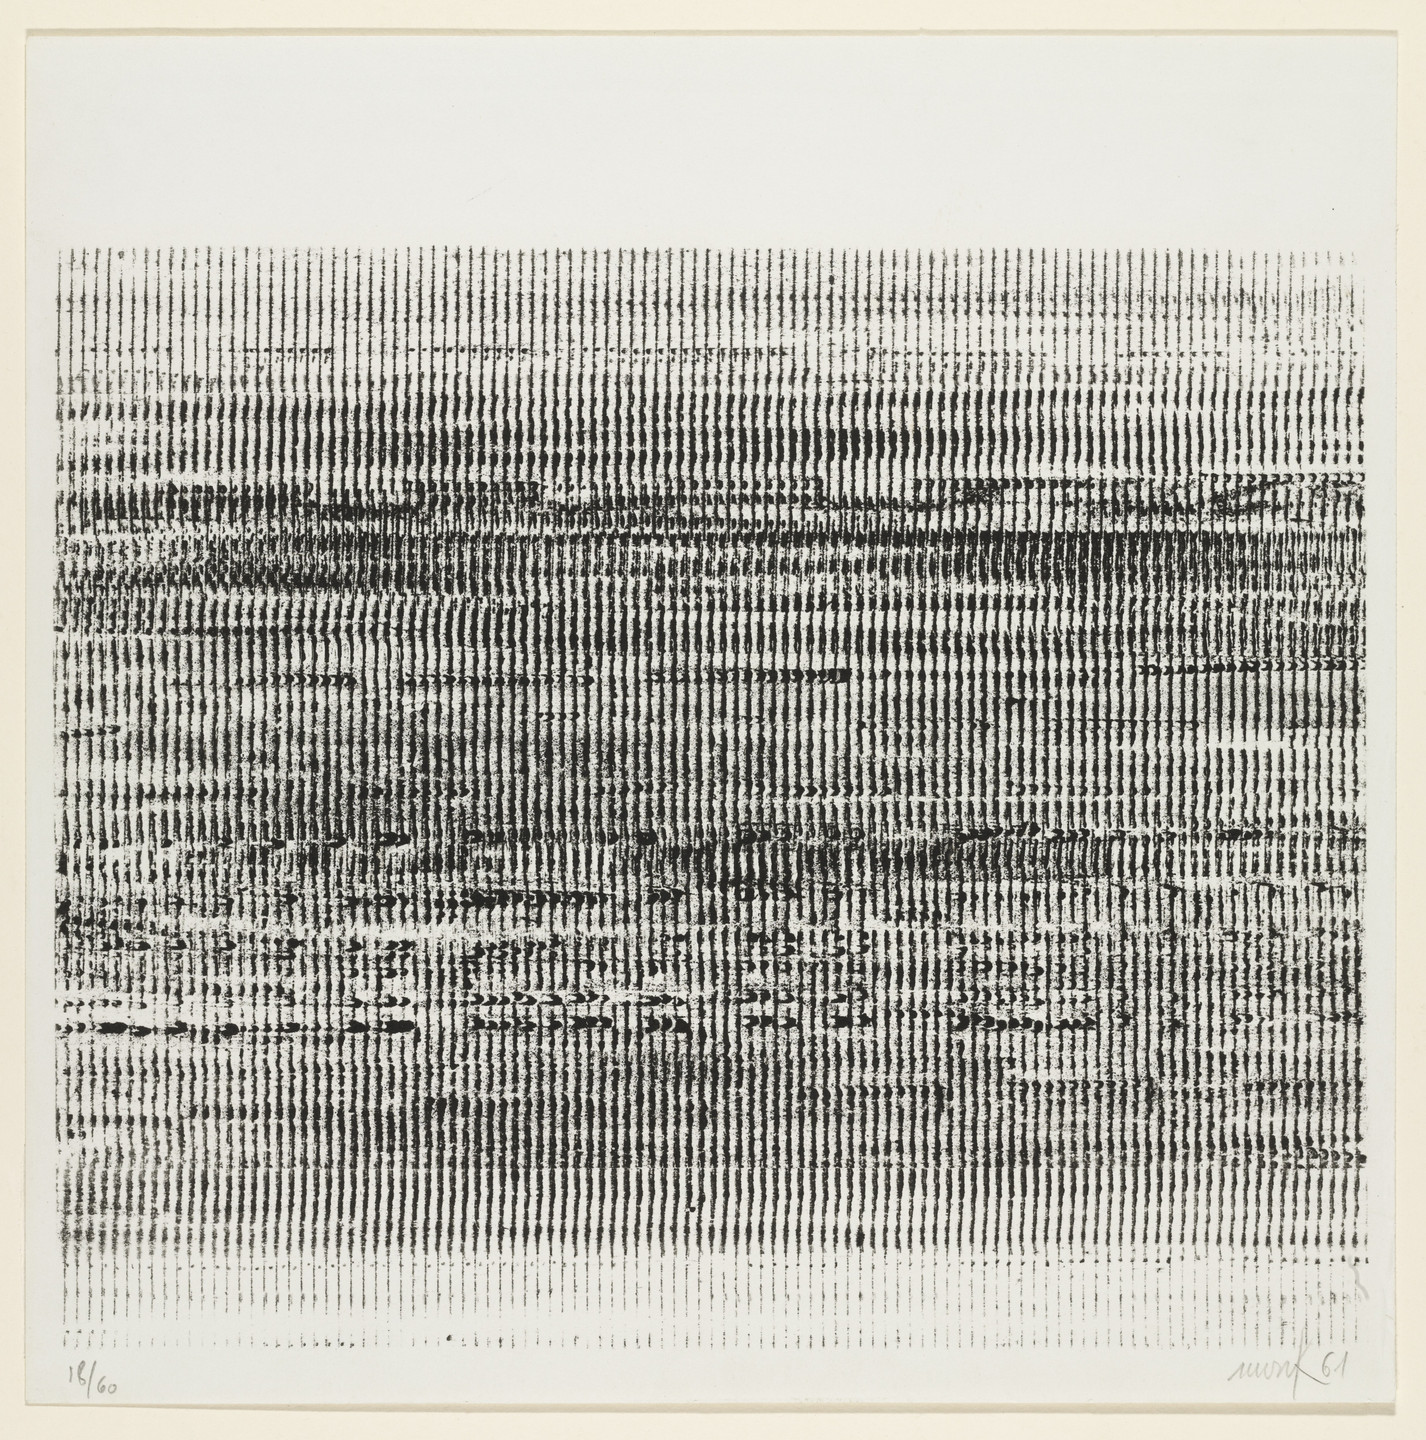 Heinz Mack. Untitled. 1961